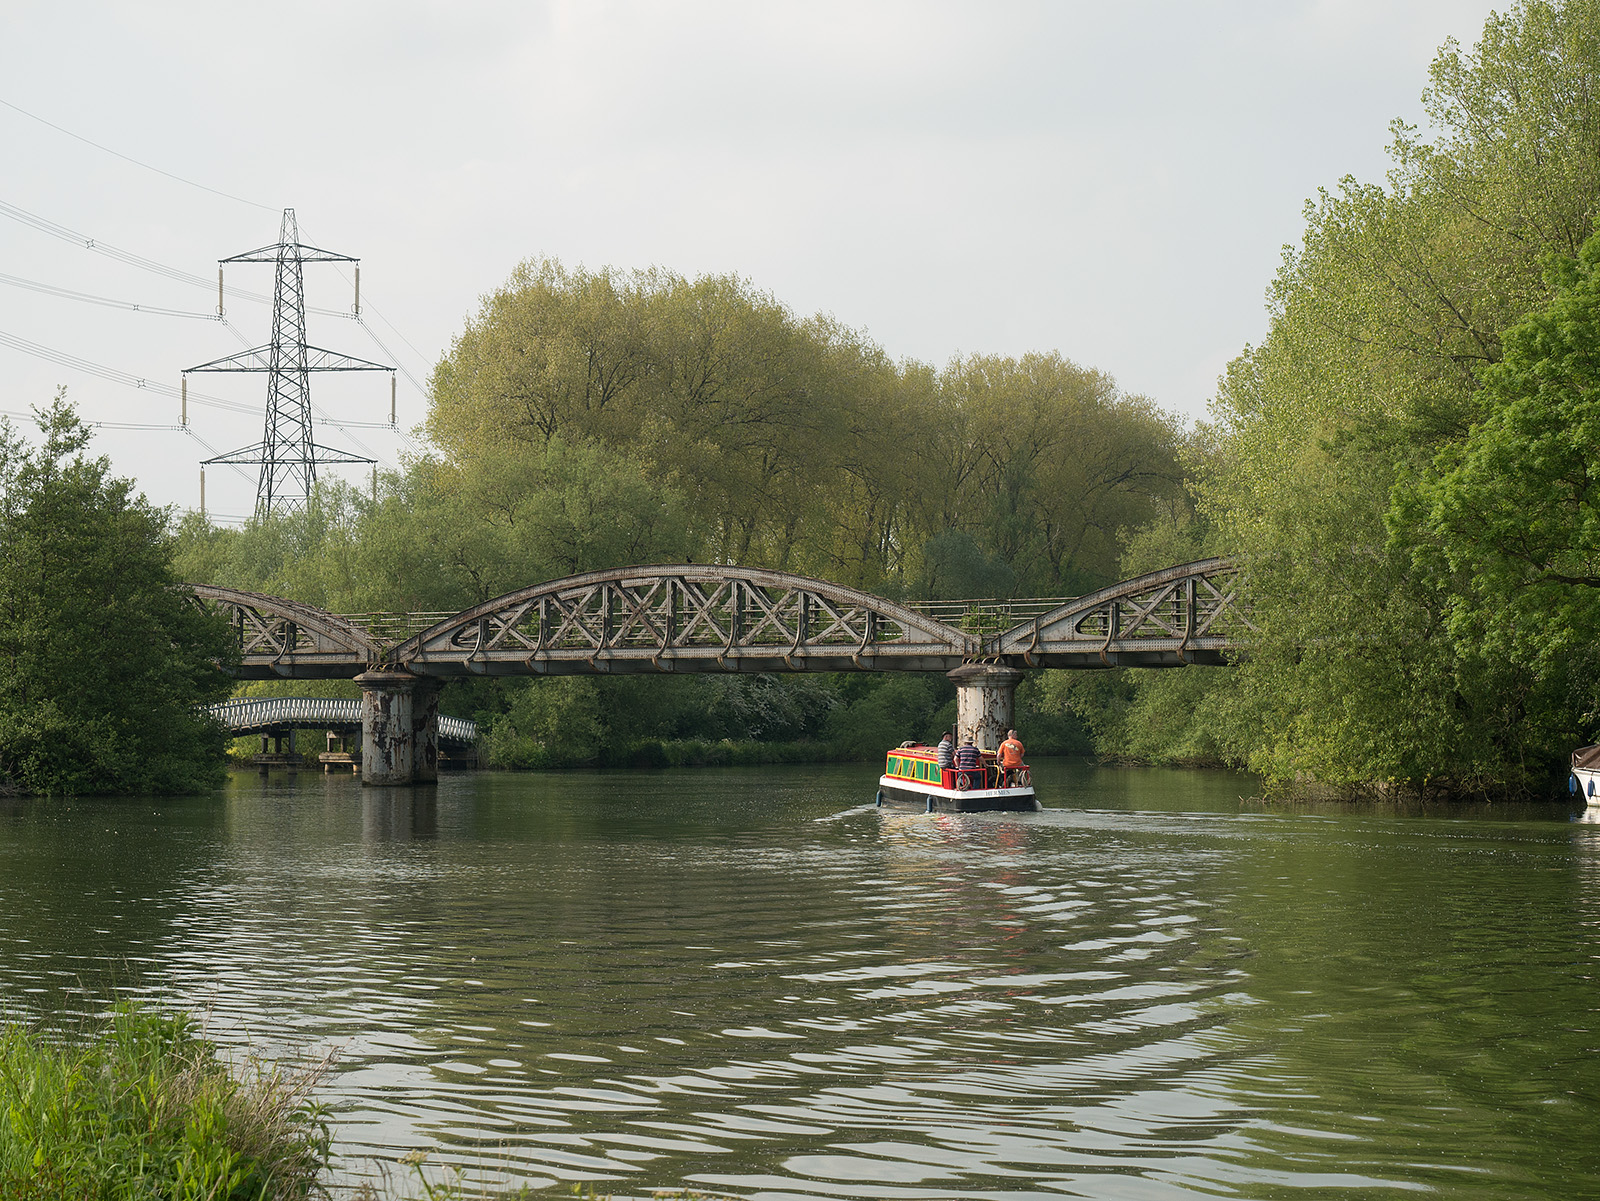 Kennington railway bridge